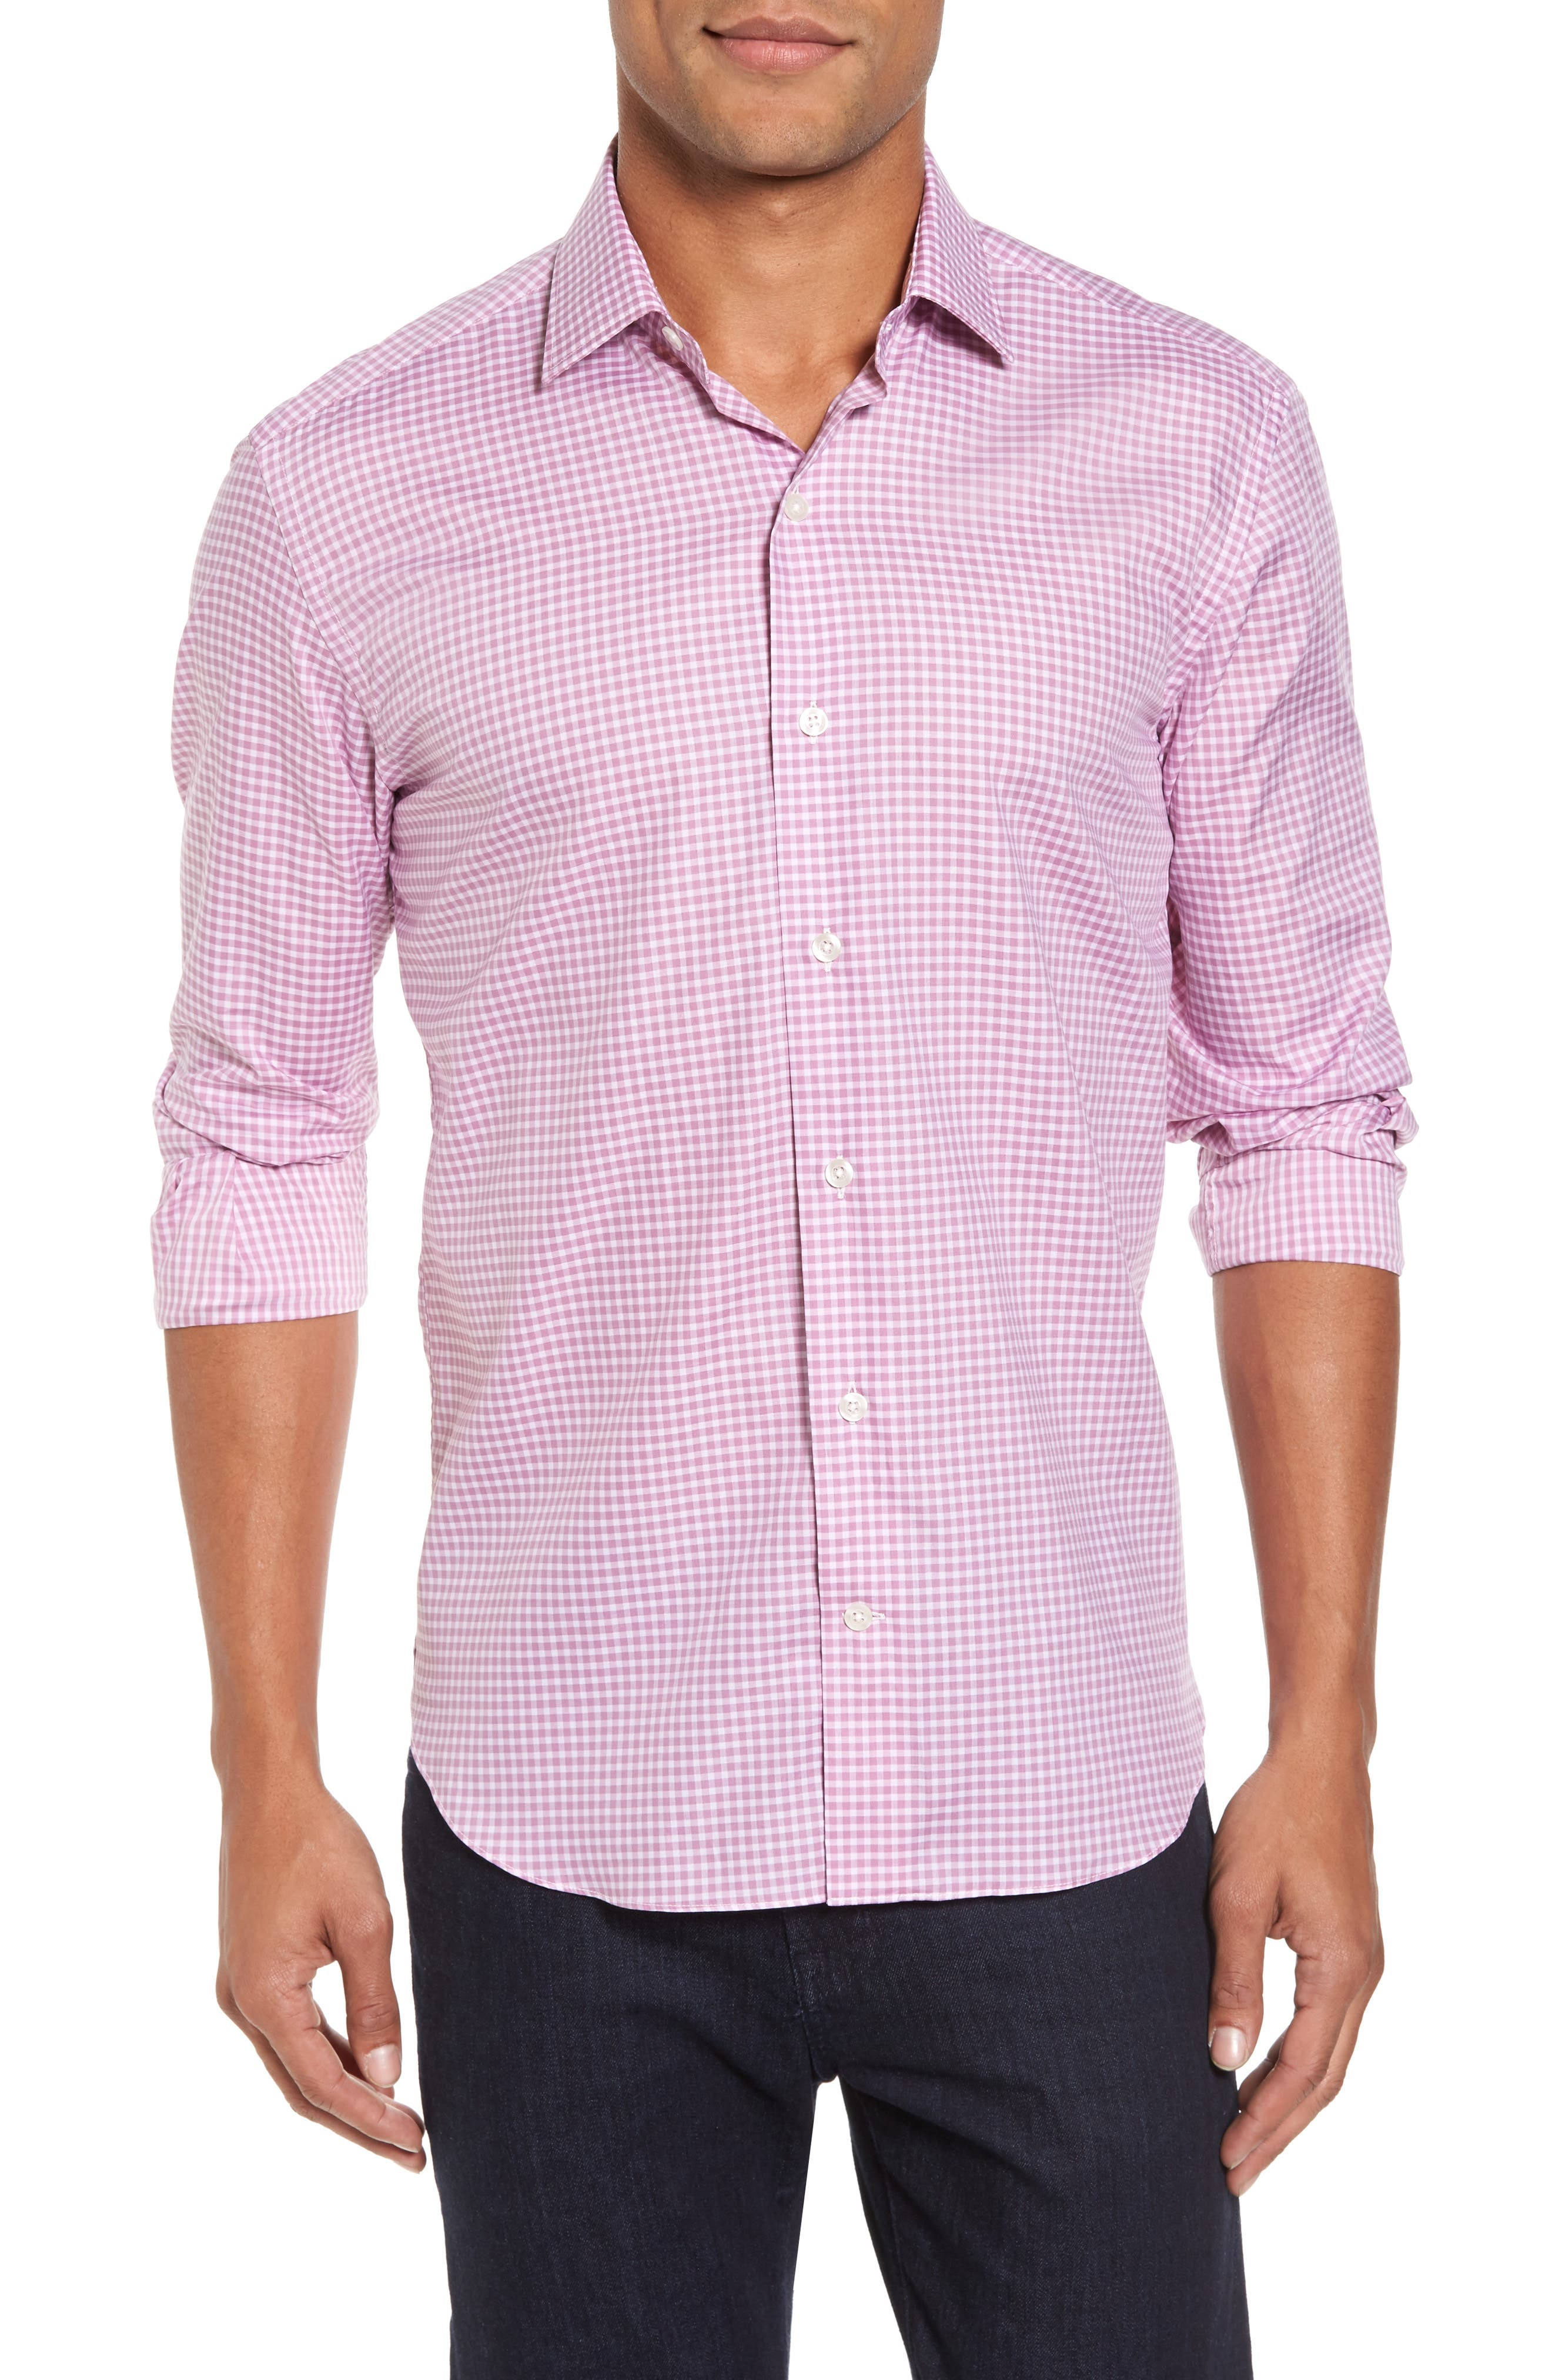 Main Image - Culturata Slim Fit Check Twill Sport Shirt